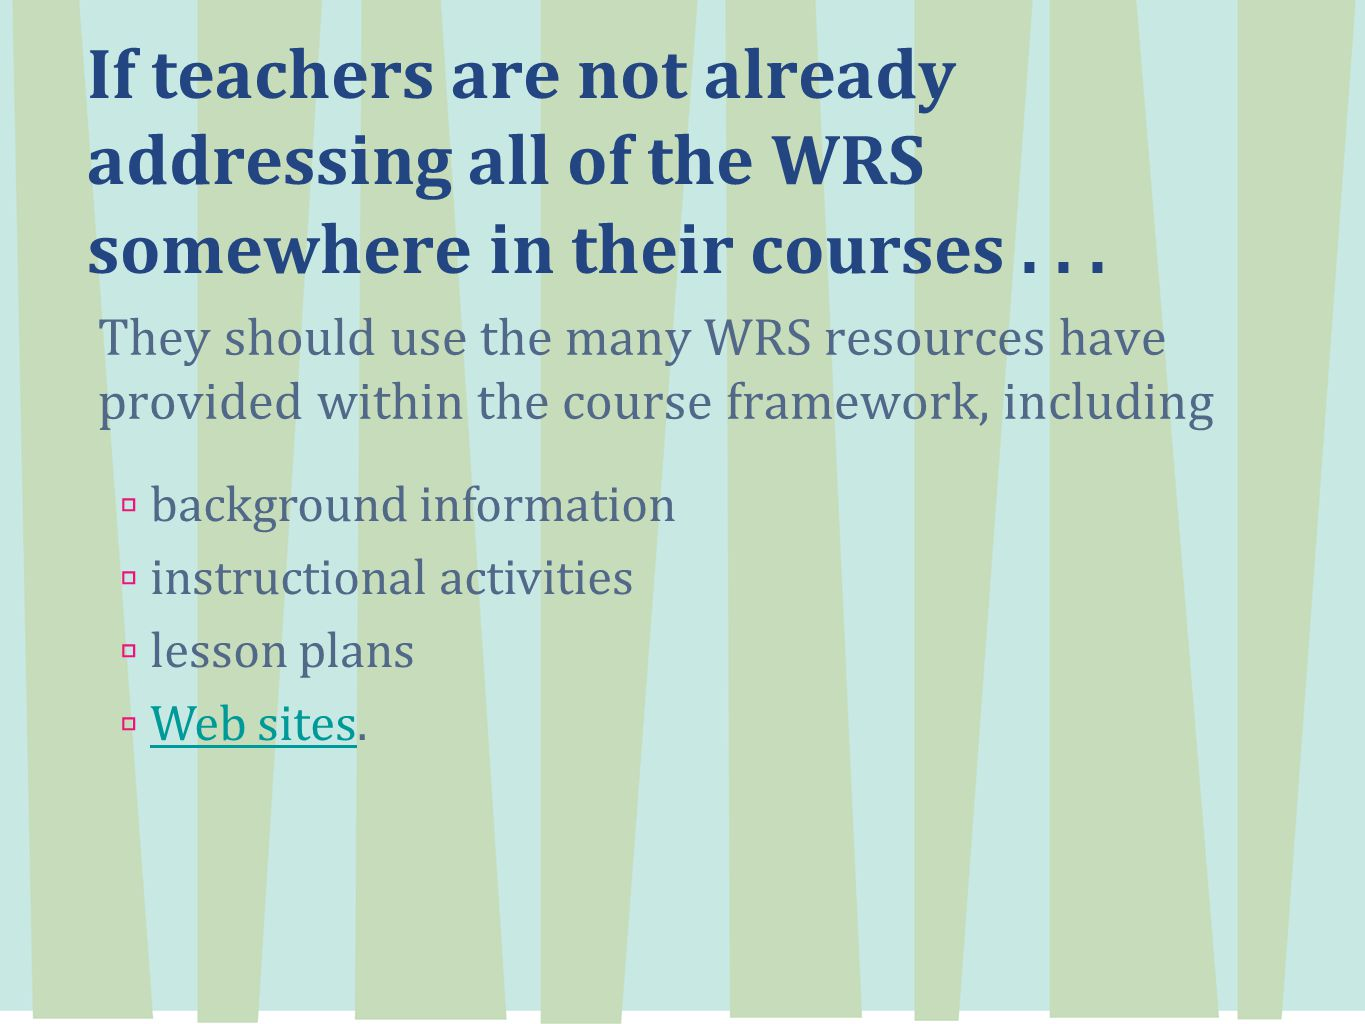 If teachers are not already addressing all of the WRS somewhere in their courses...